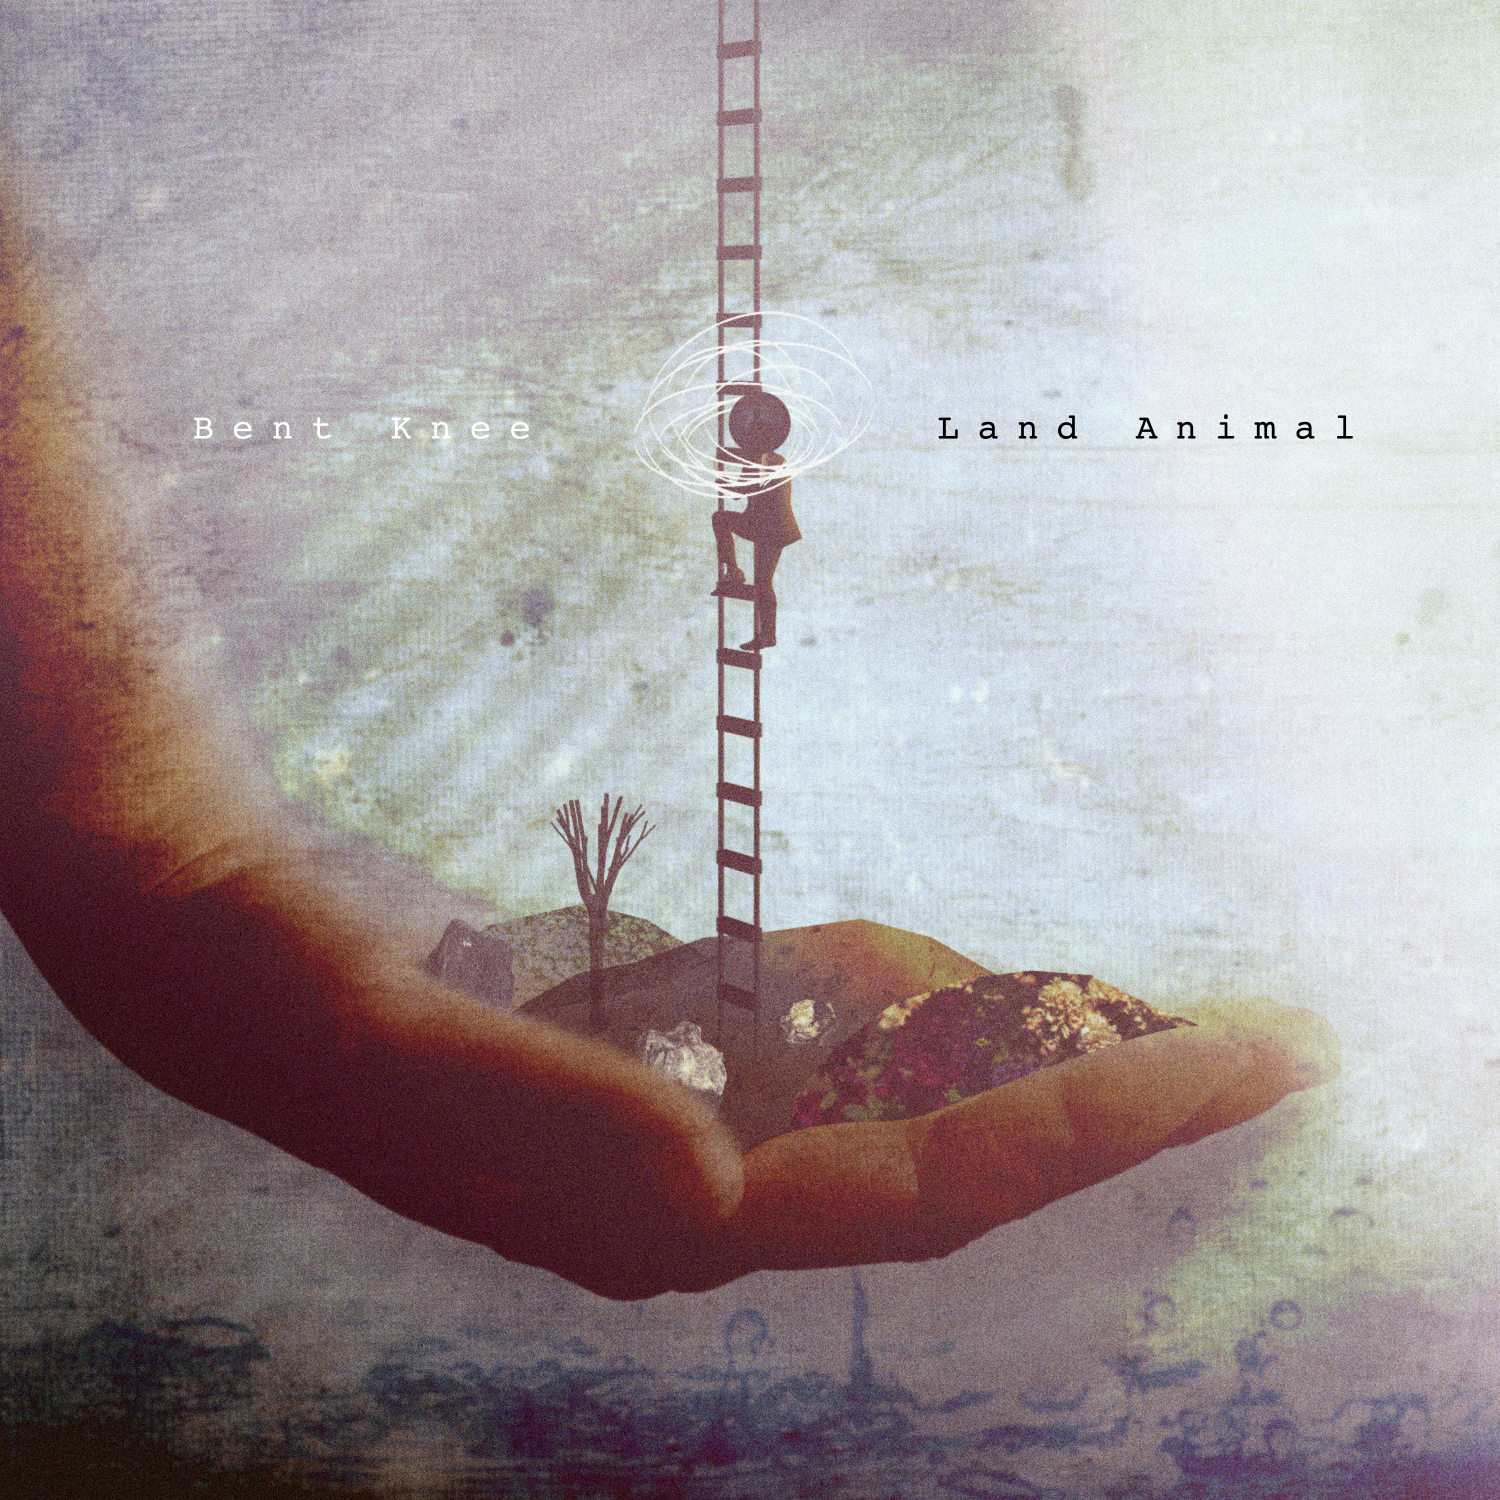 Land Animal by Bent Knee